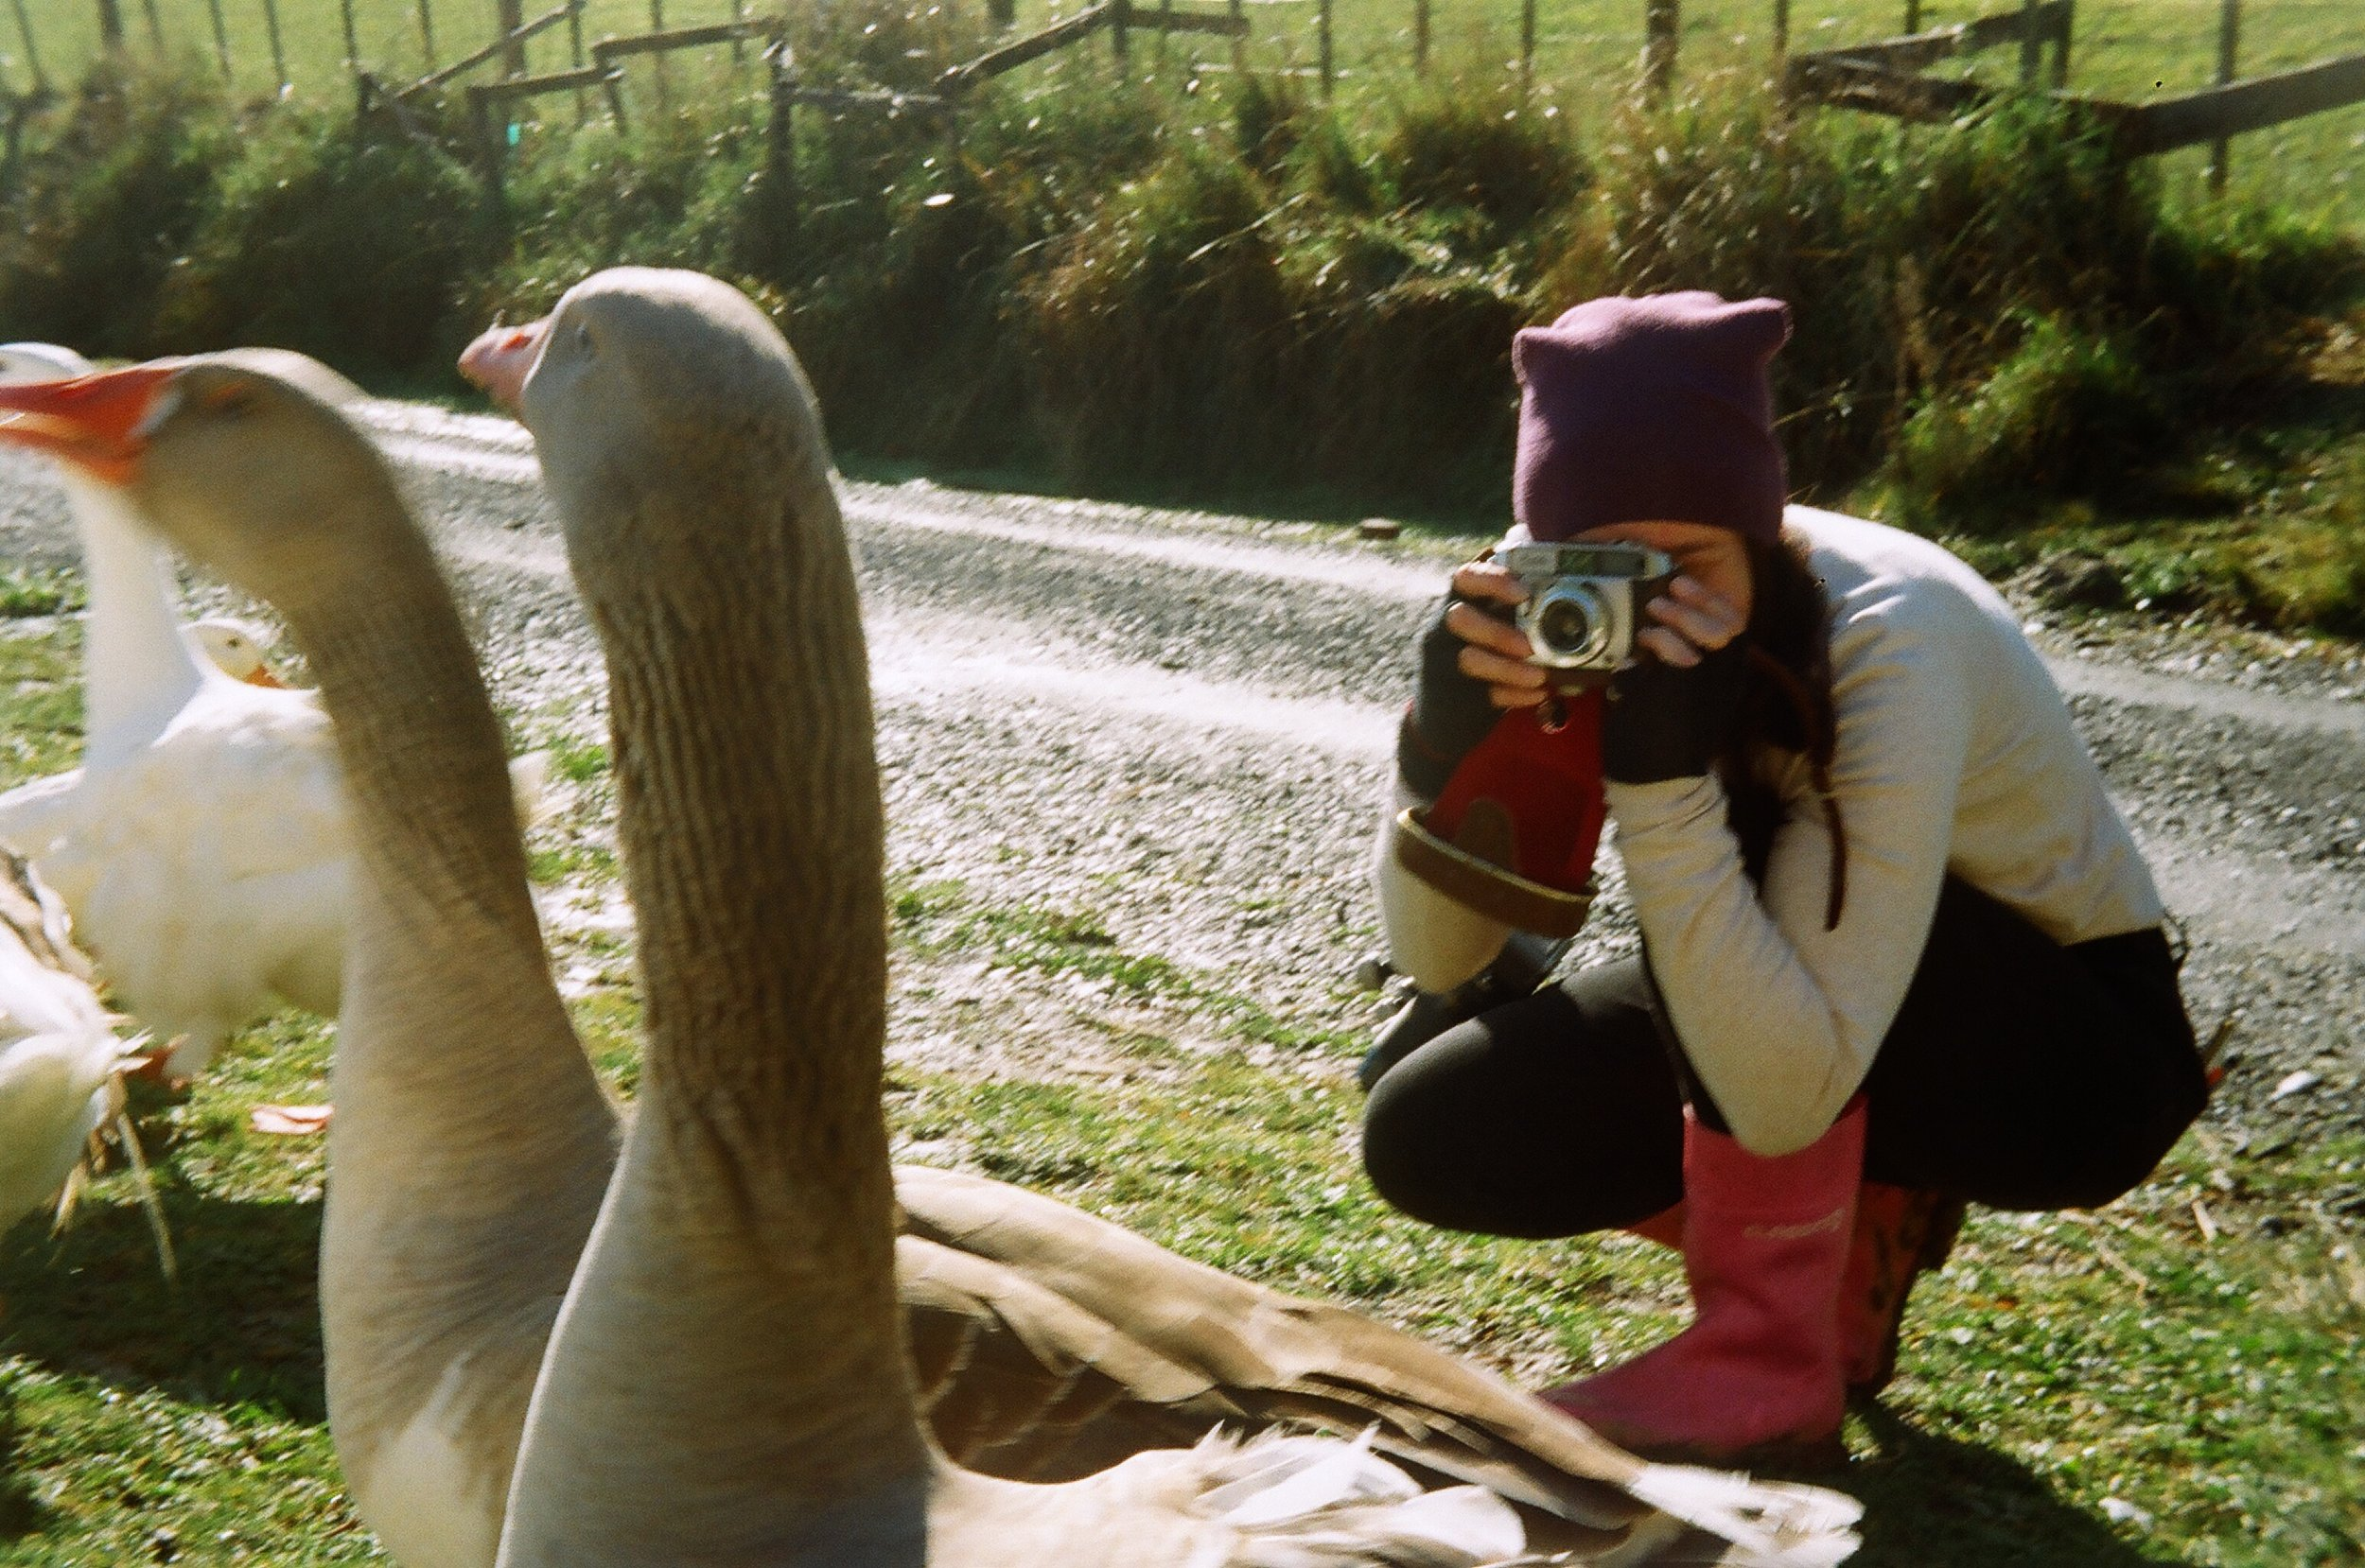 Here I am using the Balda camera, thank you for the photograph Nikki (taken with the Kodak ColorSnap 35)